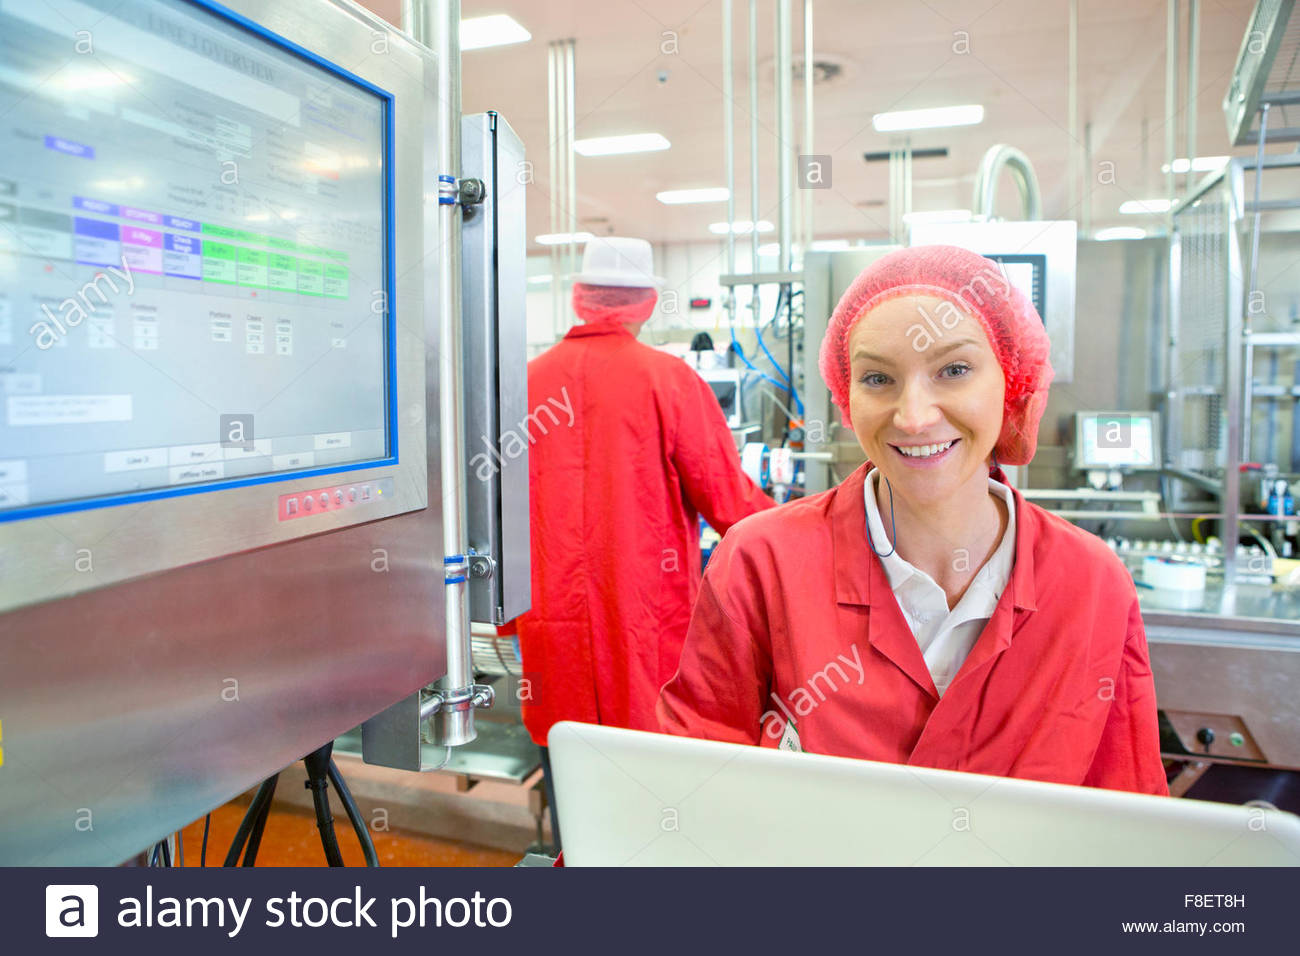 Portrait smiling worker at control panel on production line food processing plant - Stock Image